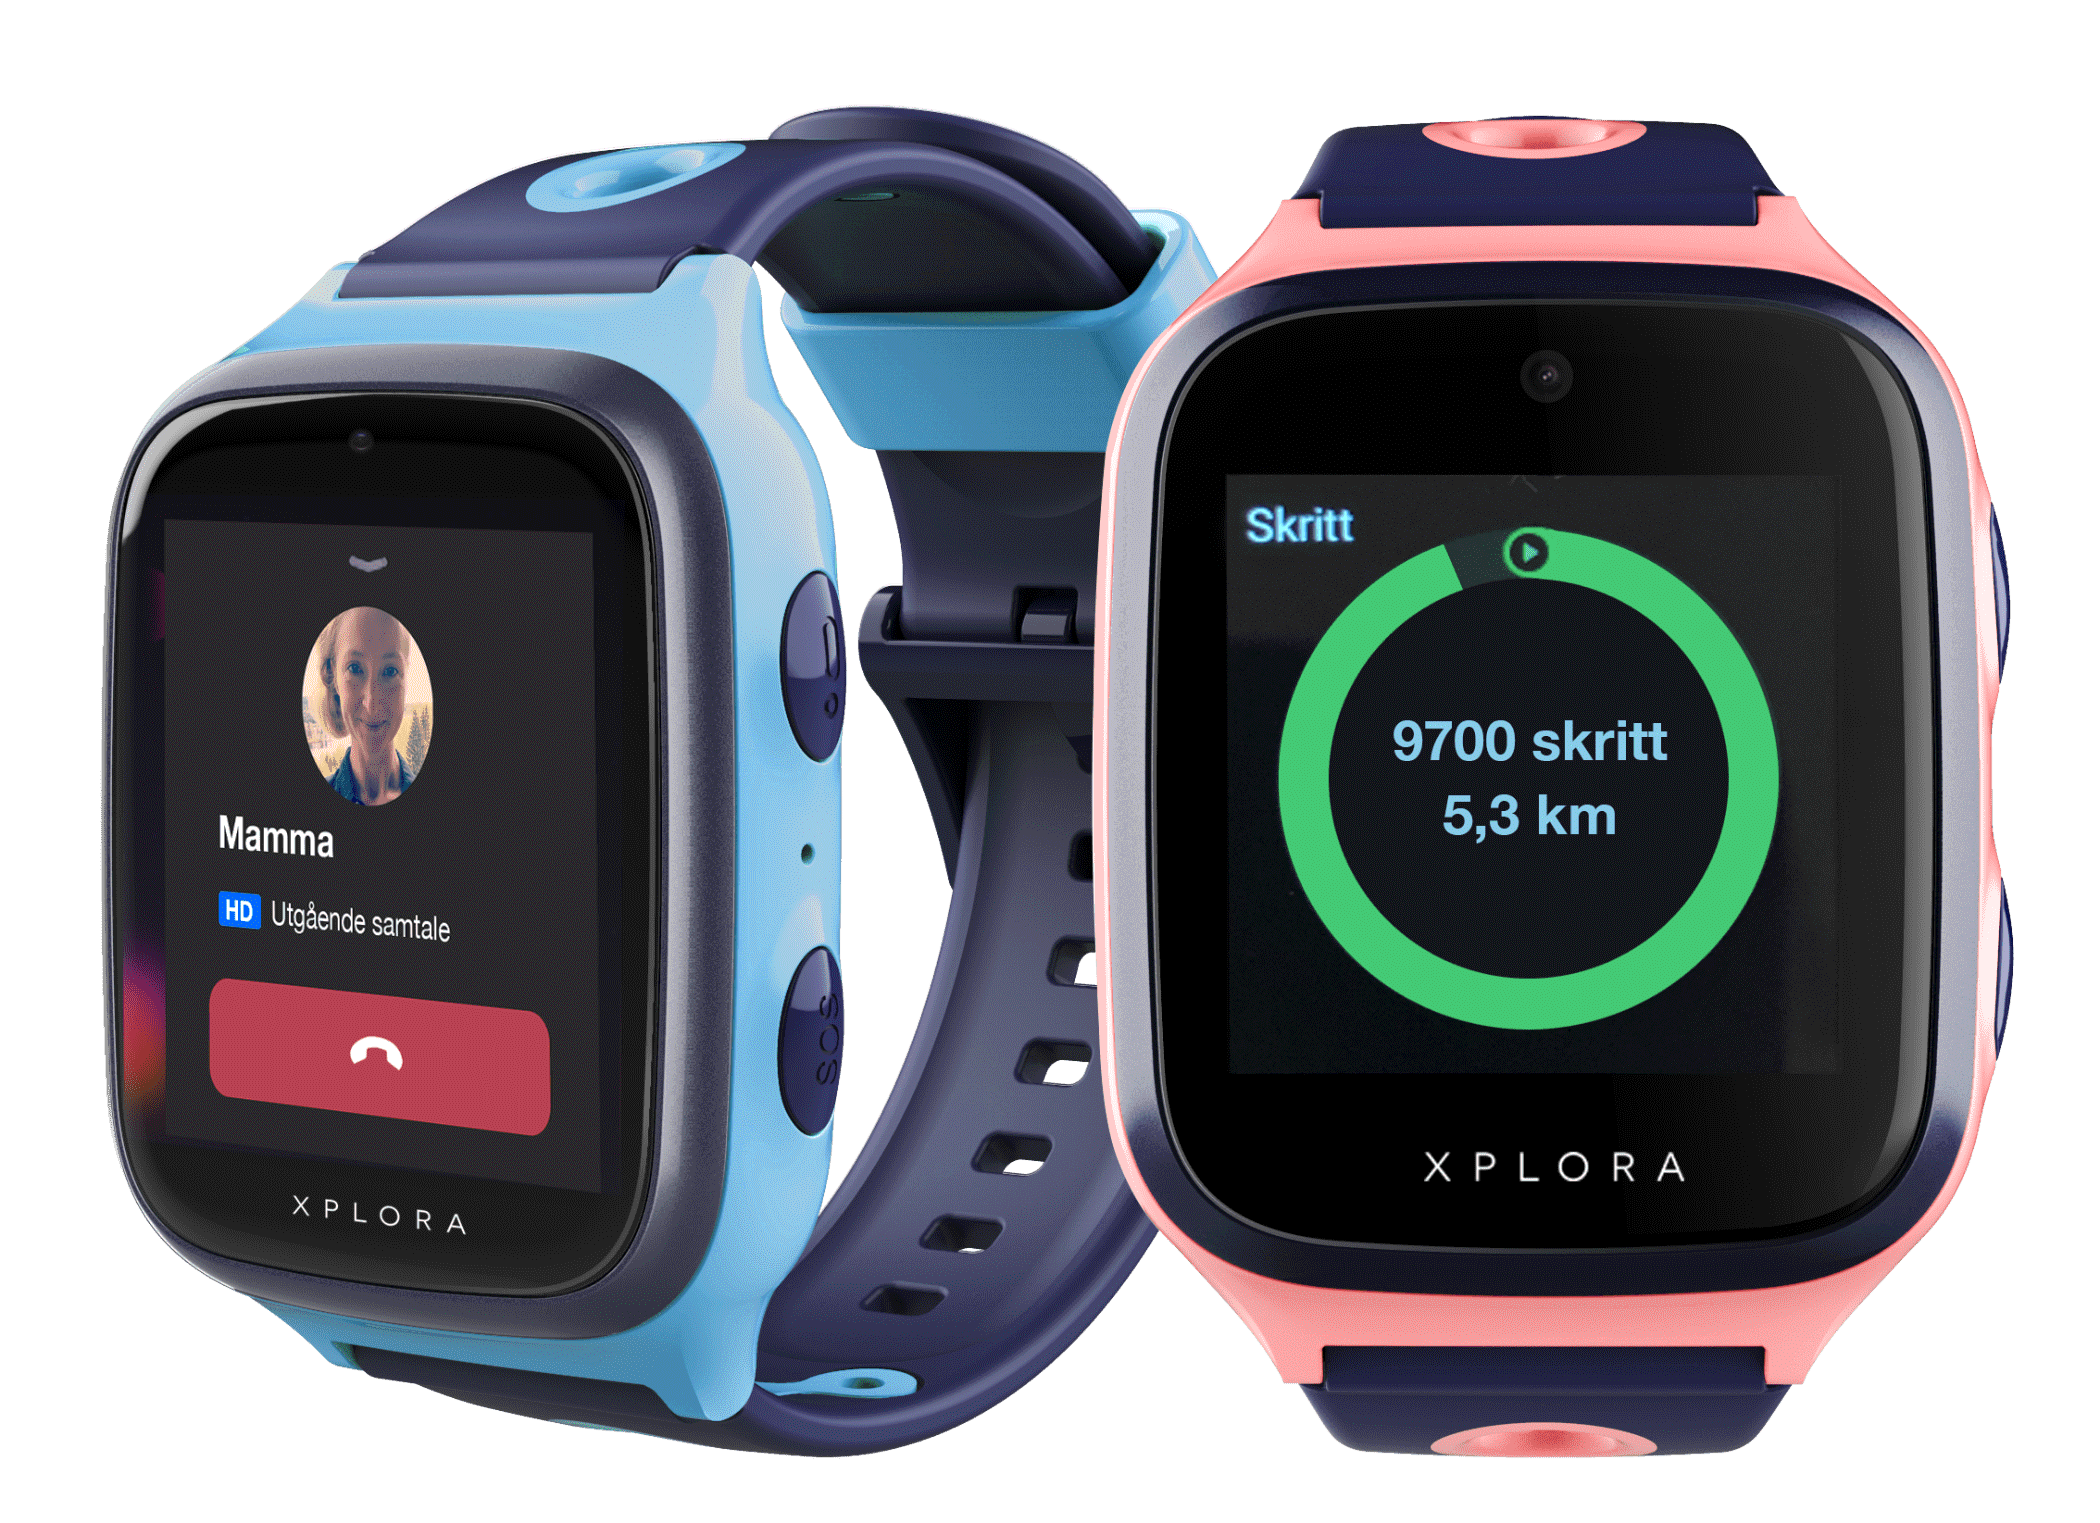 Portable communications device, Watch phone, Technology, Product, Gadget